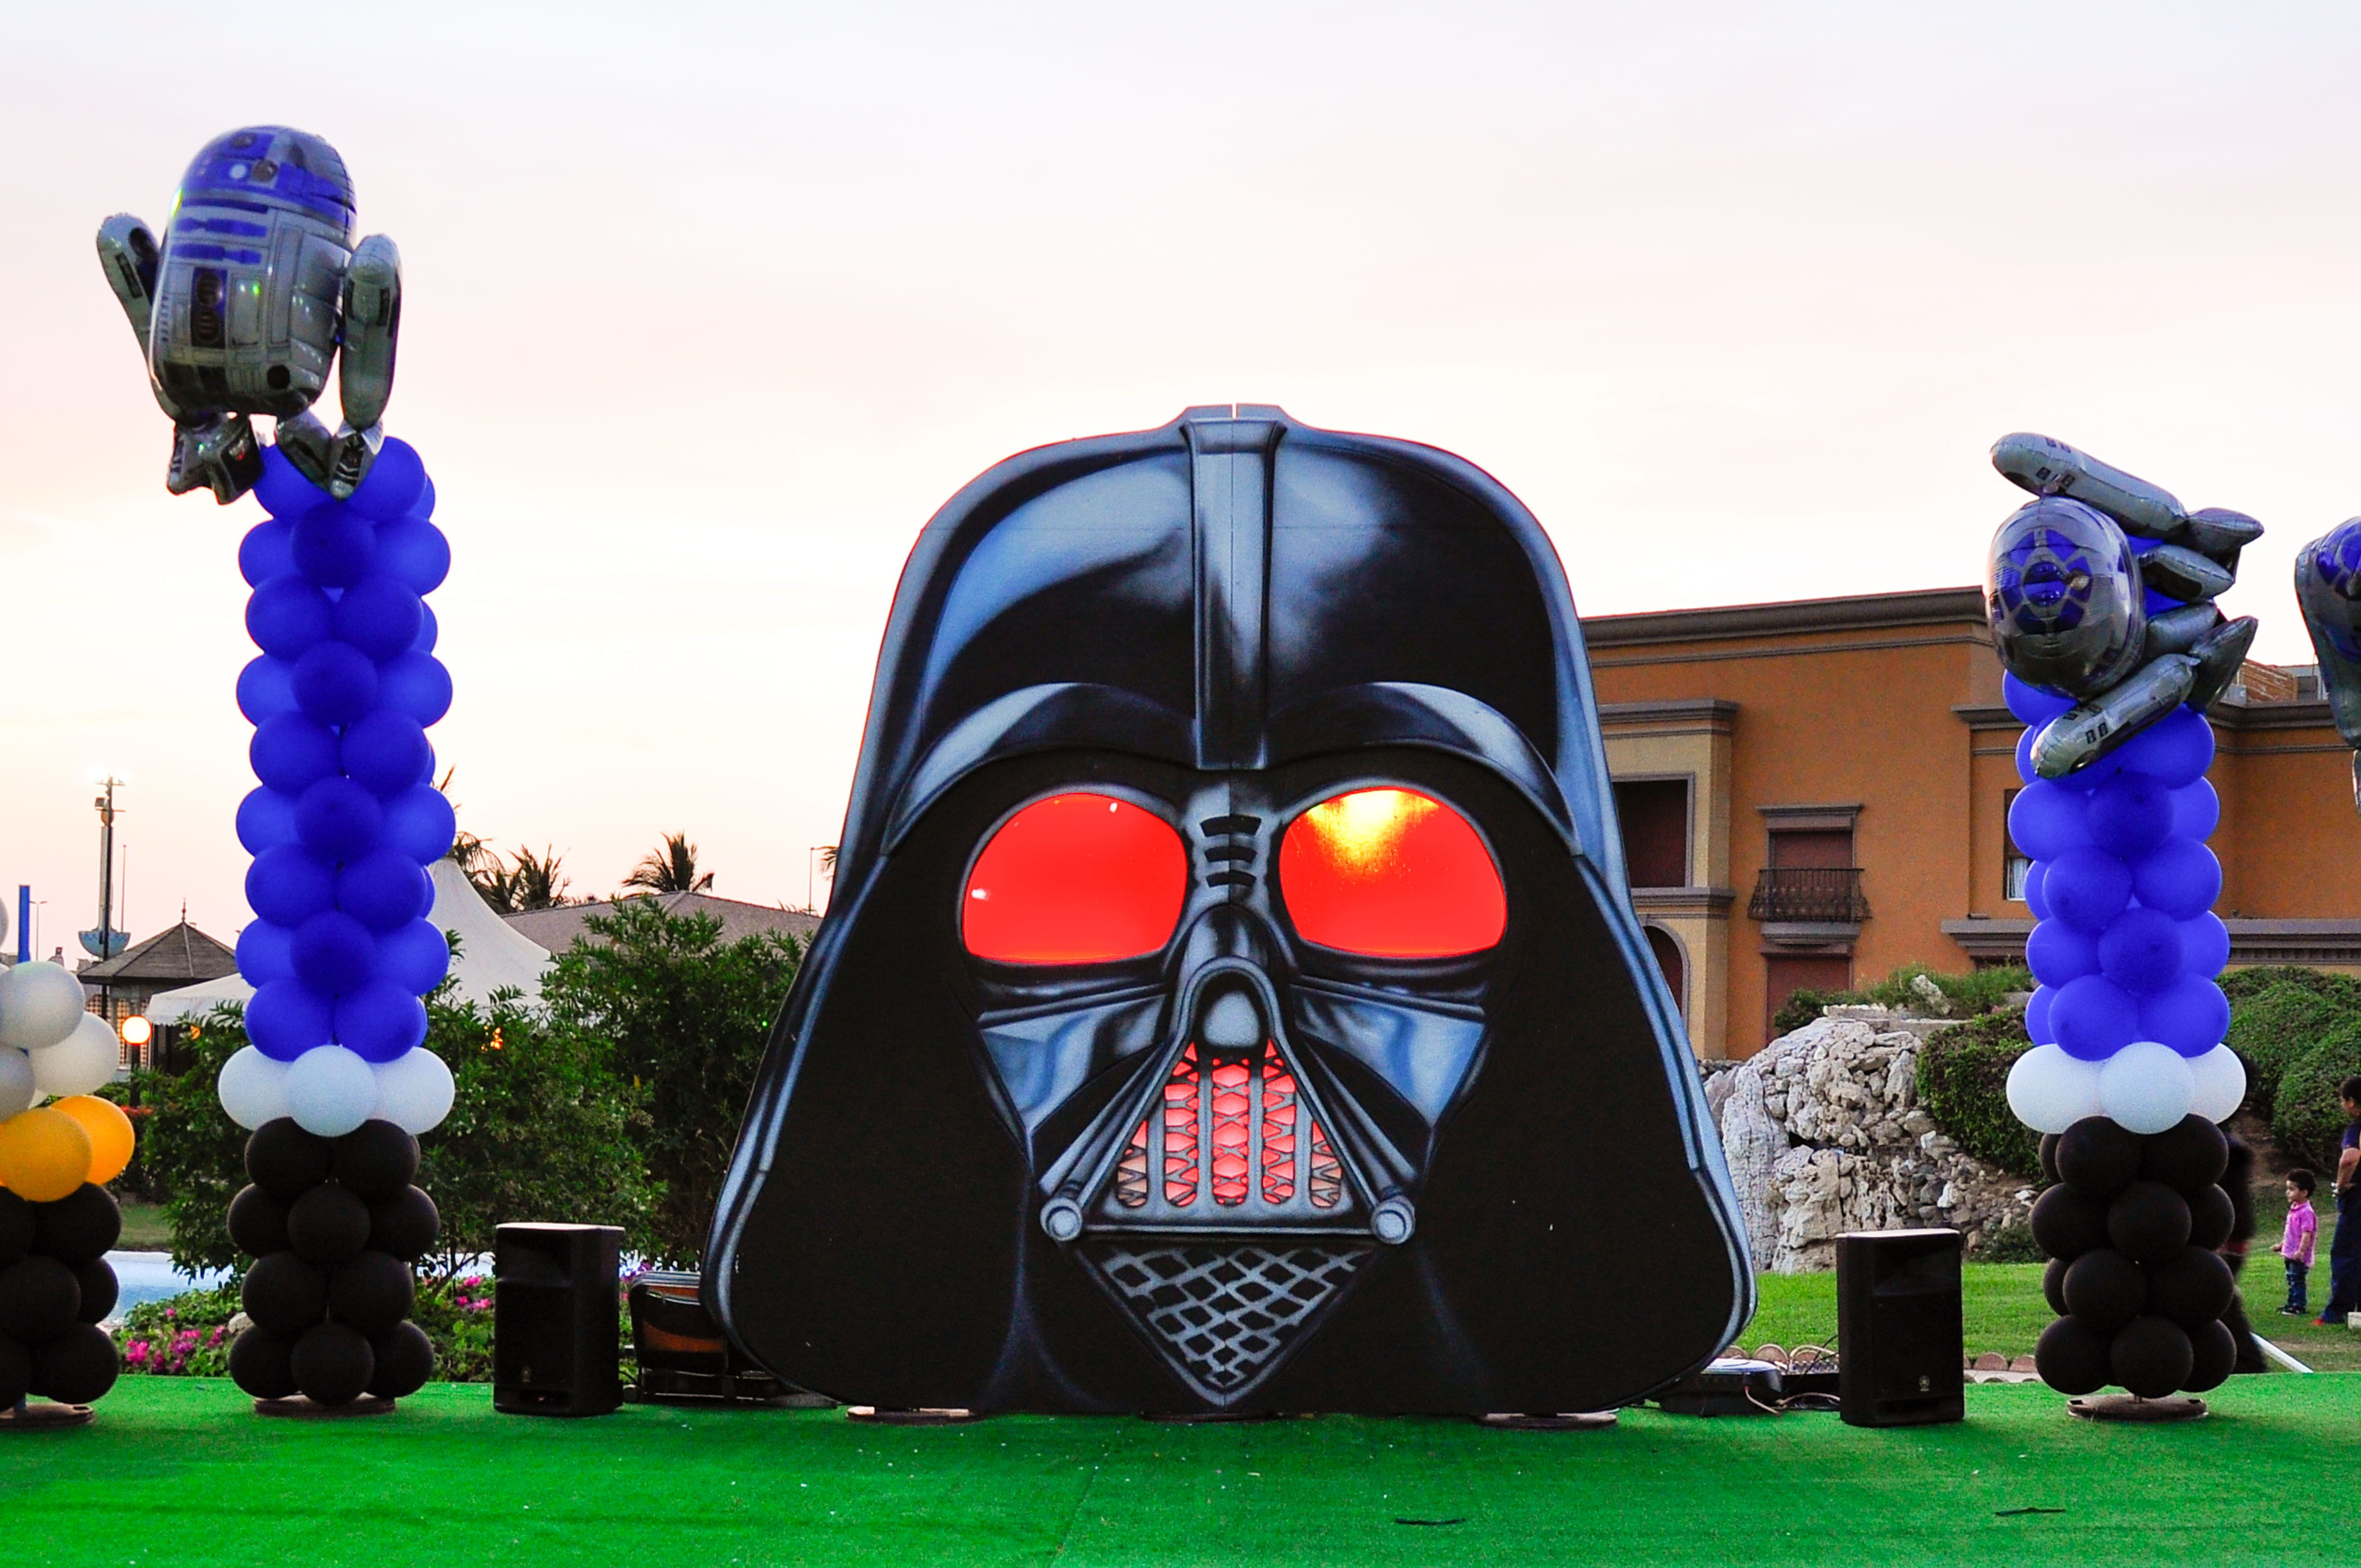 Star Wars DARTH VADER Square Birthday Party Decoration Balloon